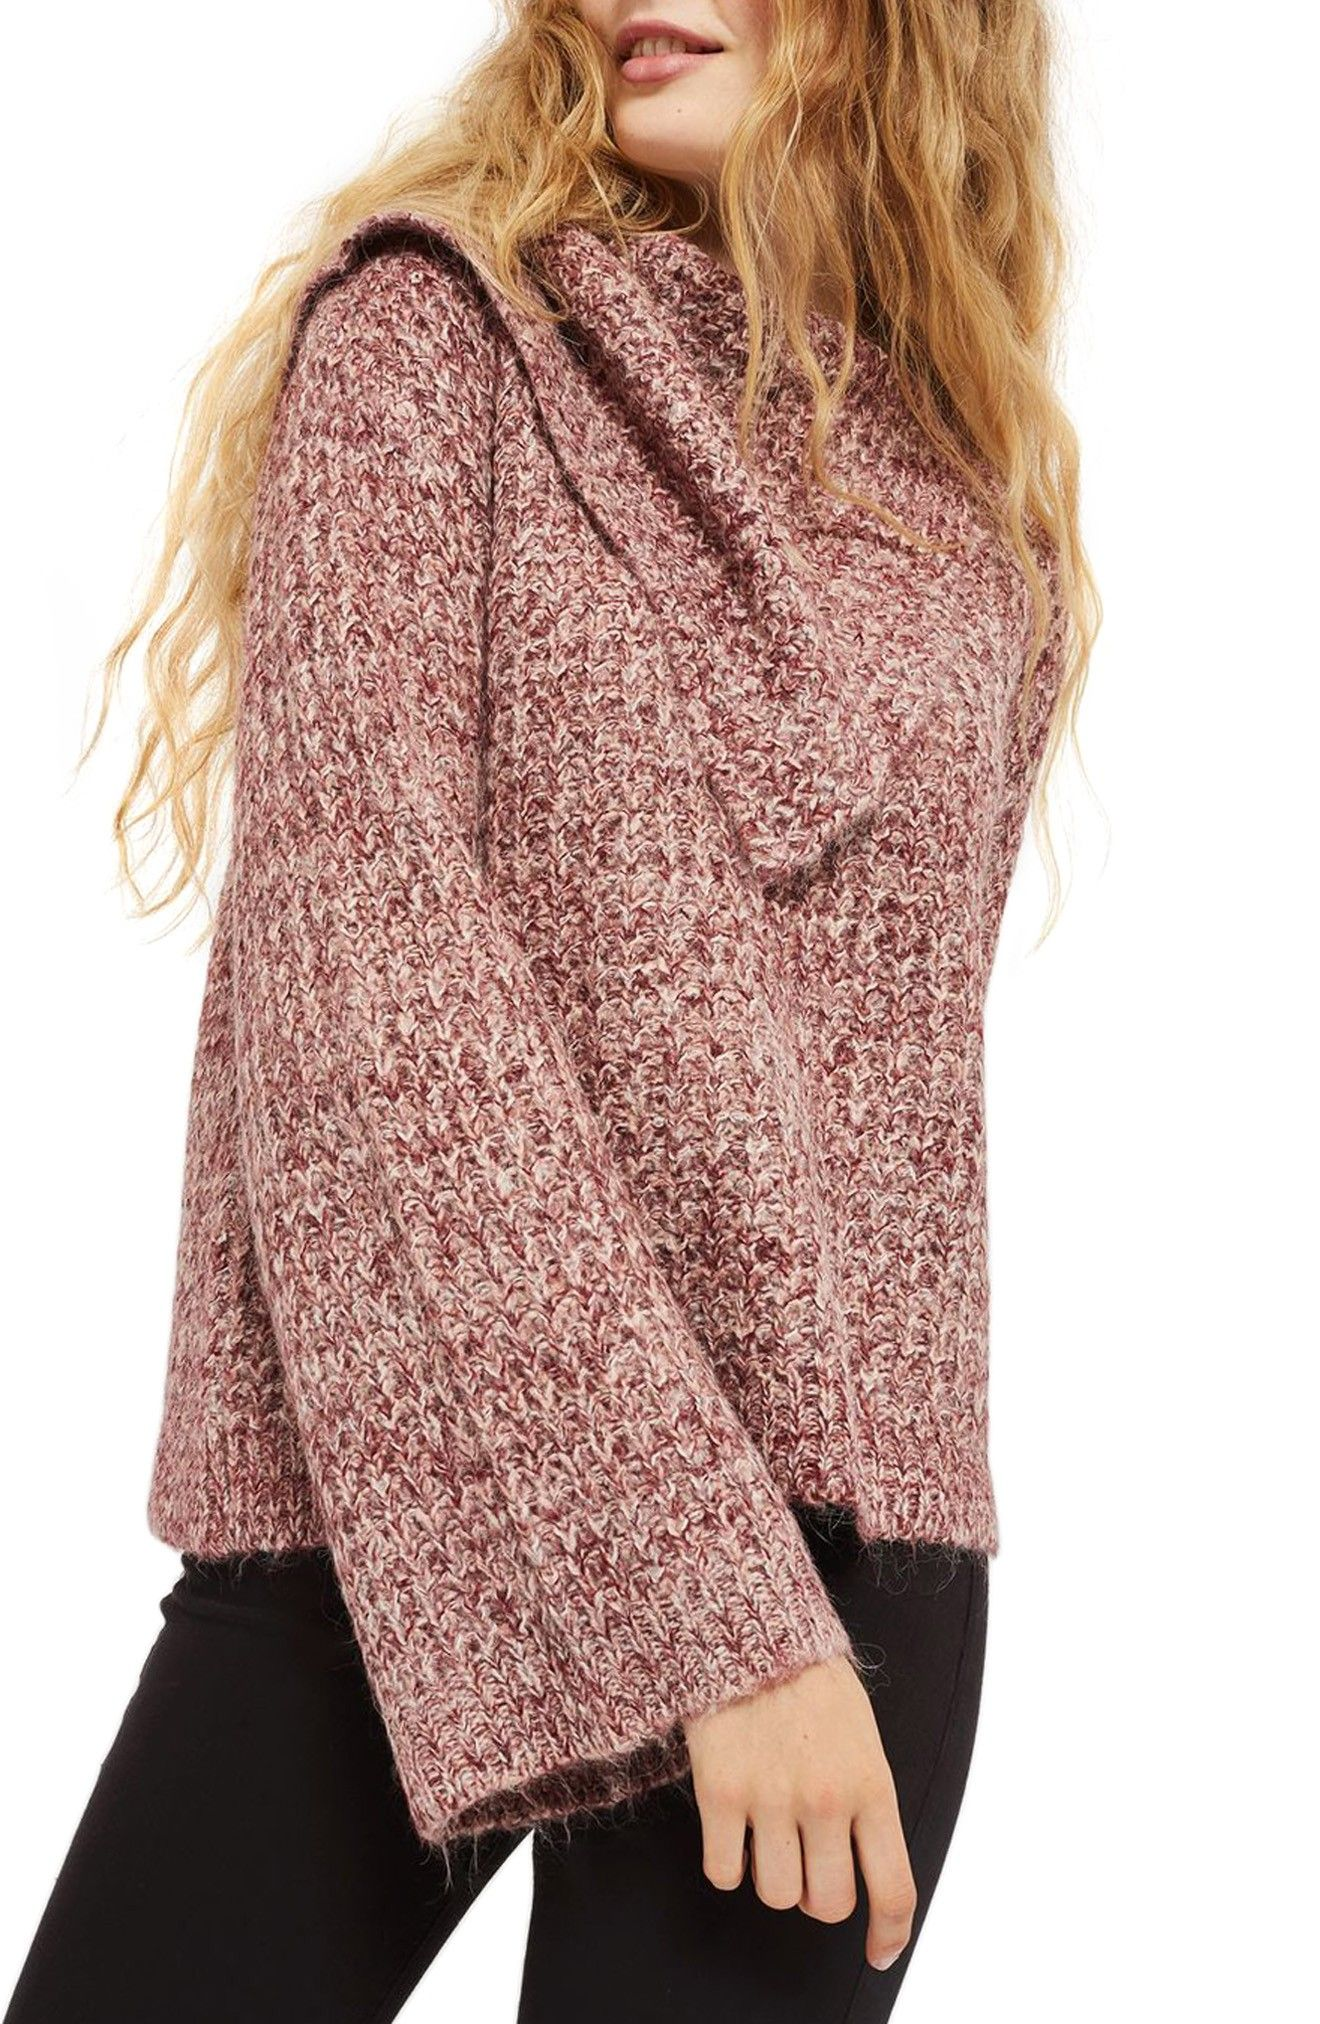 An oversized envelope neck that drapes over one shoulder adds fashion-forward  style to this cozy bell-sleeve knit infused with wool and alpaca for an ... cc10746a4